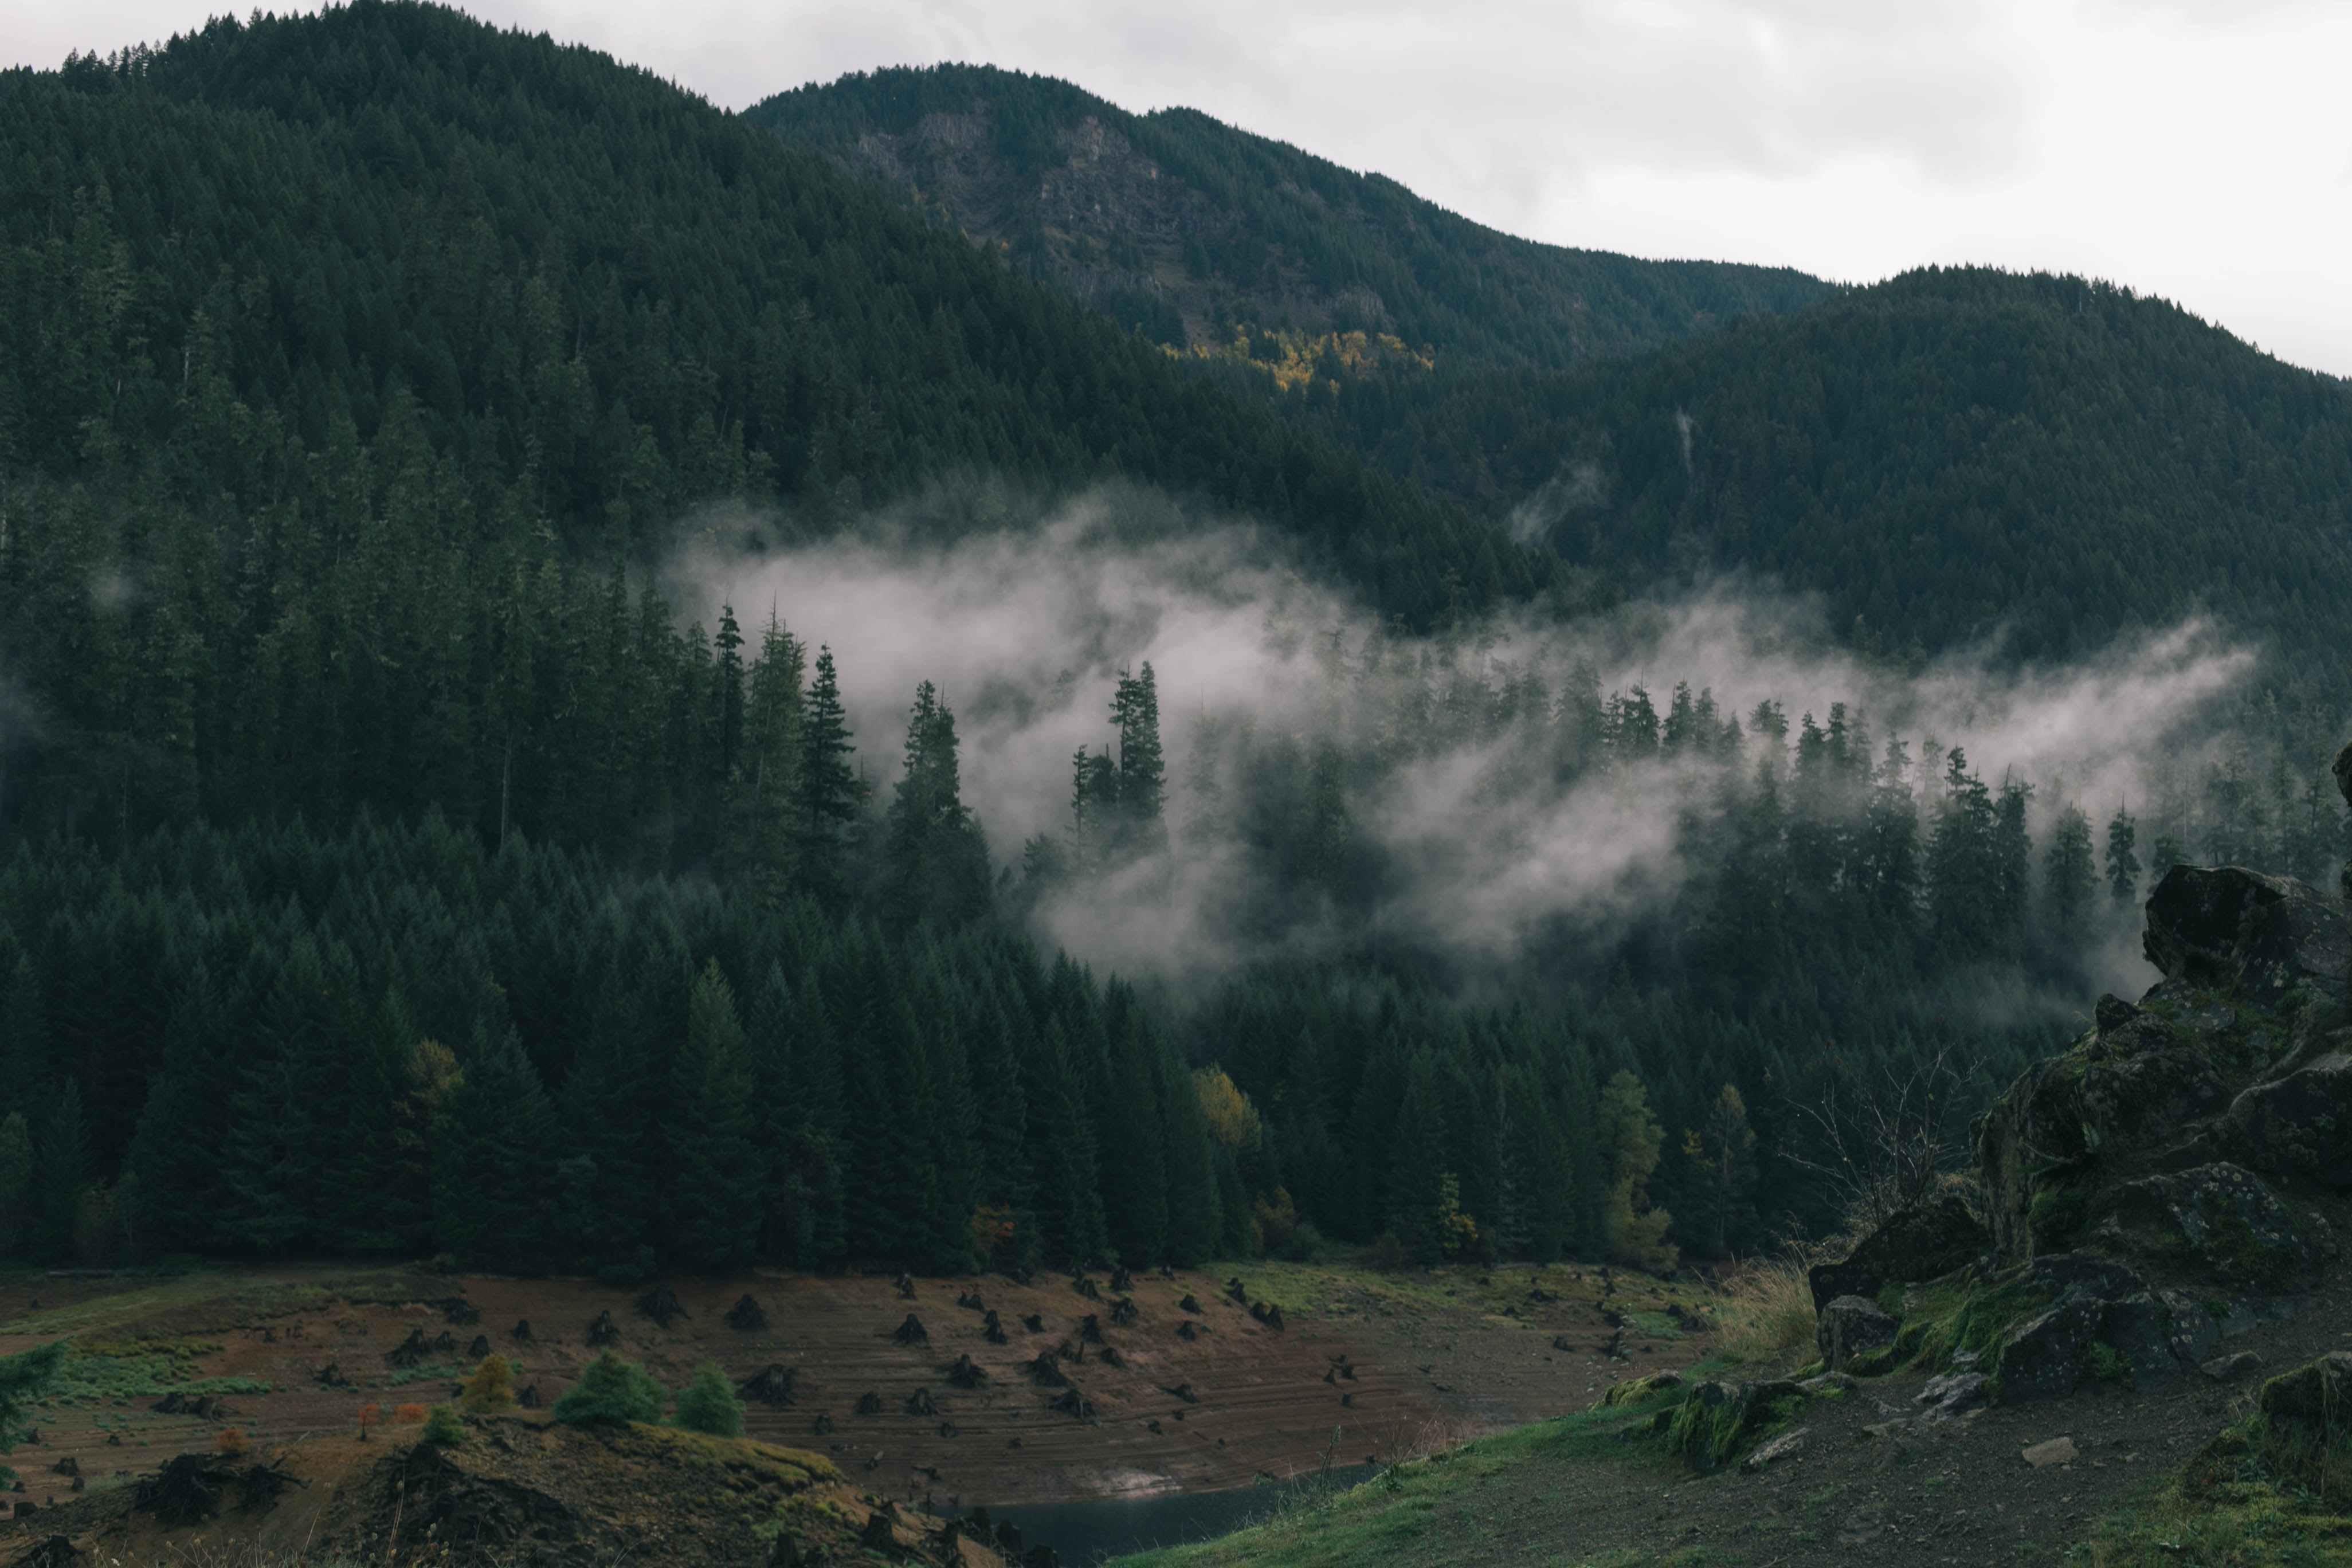 Fog over the tops of evergreen trees on tall hills